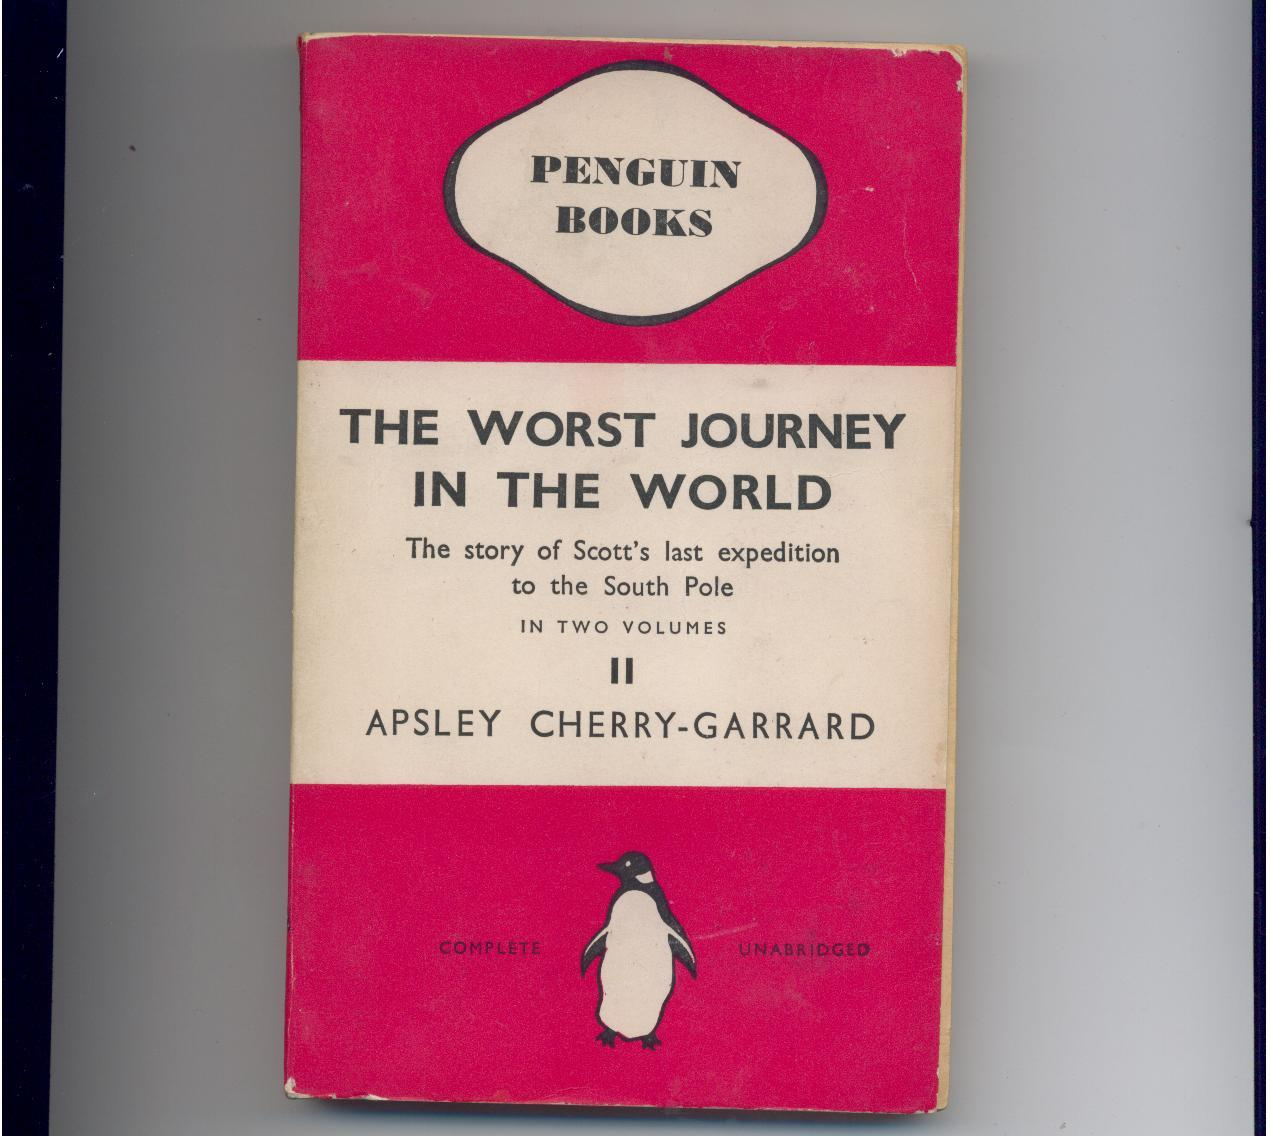 WORST JOURNEY IN THE WORLD - 1937 Penguin ed. - South Pole